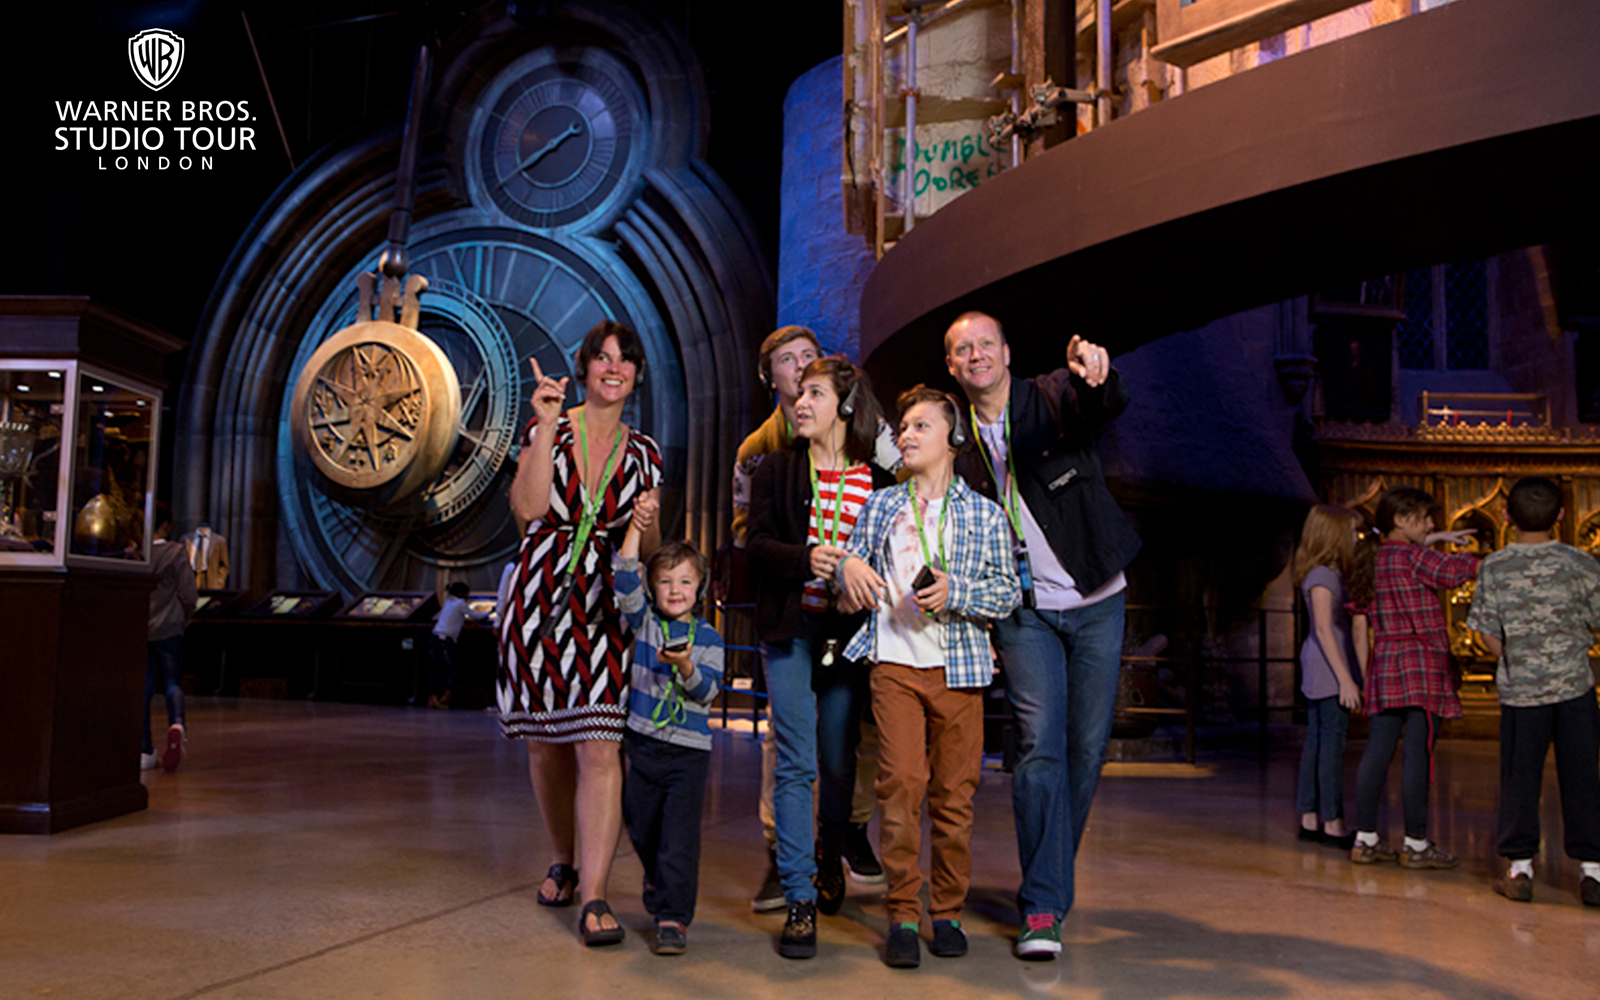 70f84209 7d59 4341 89f3 f18e0ee93e6f 9578 london special guided tour of warner bros studio   the making of harry potter 03